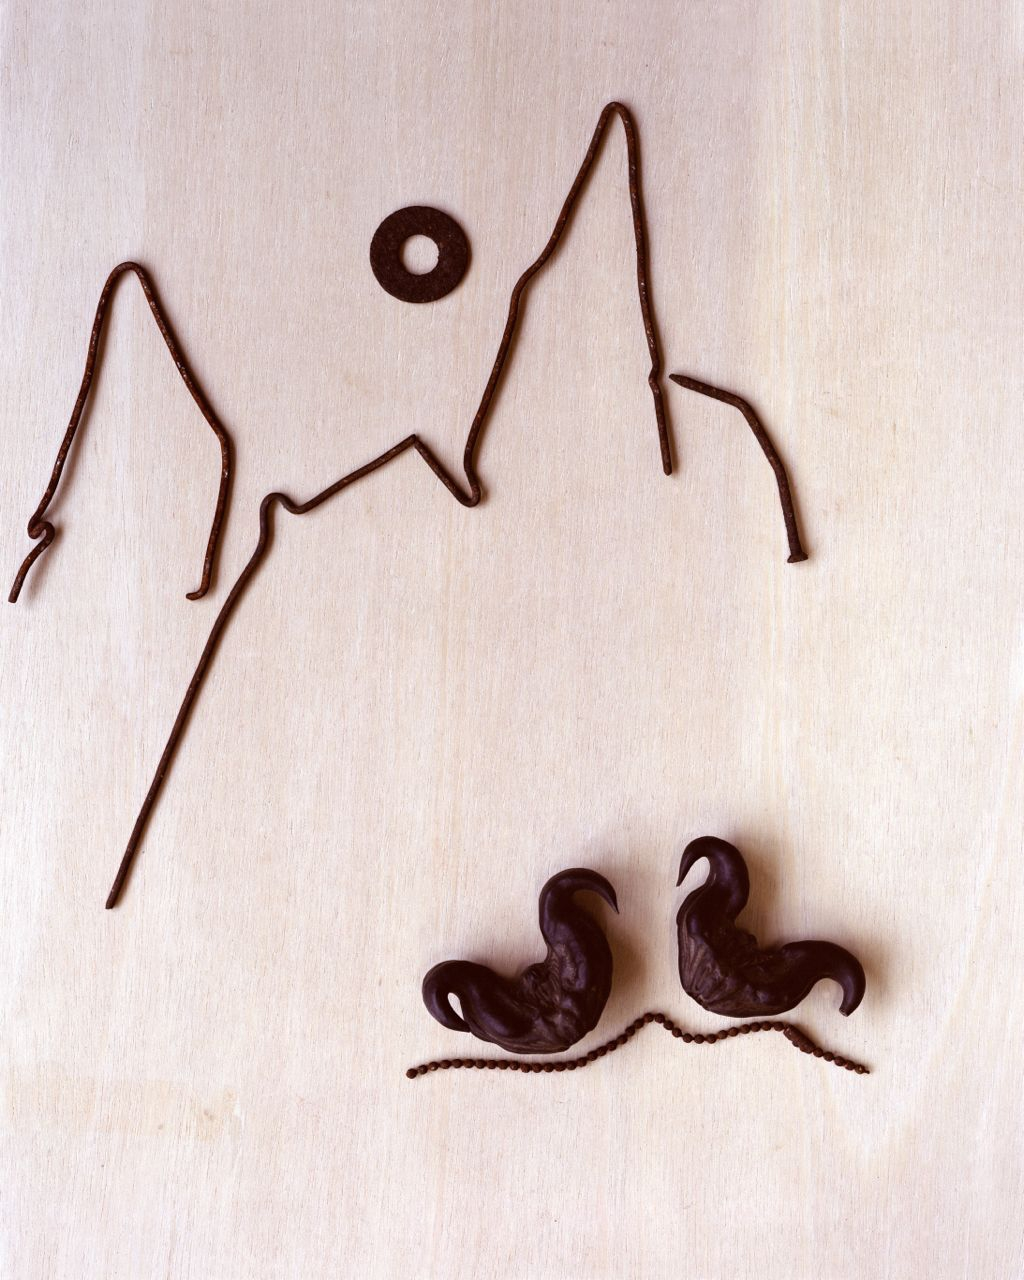 water caltrop / collected 2007 <p>wire / nails / ring / chain / collected 1995-2005